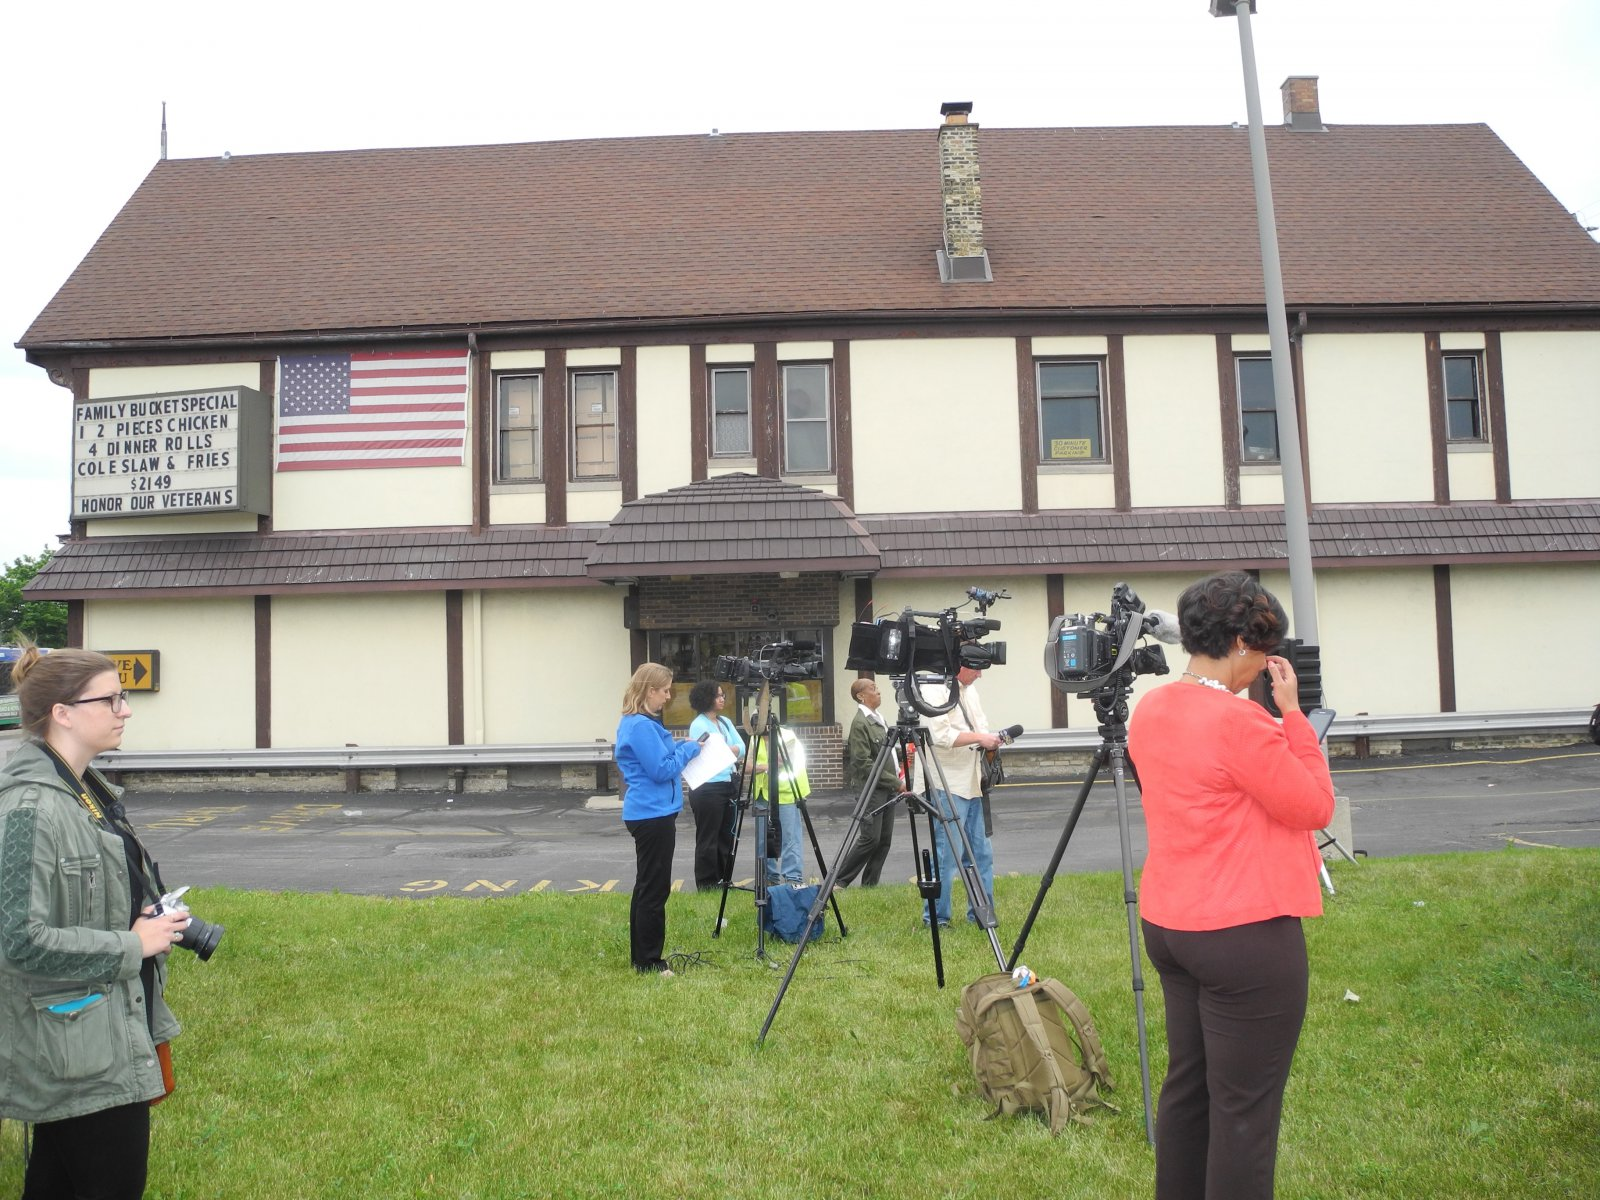 The press conference was held in front of Gold Rush Chicken at W. North Avenue and N. 27th St.